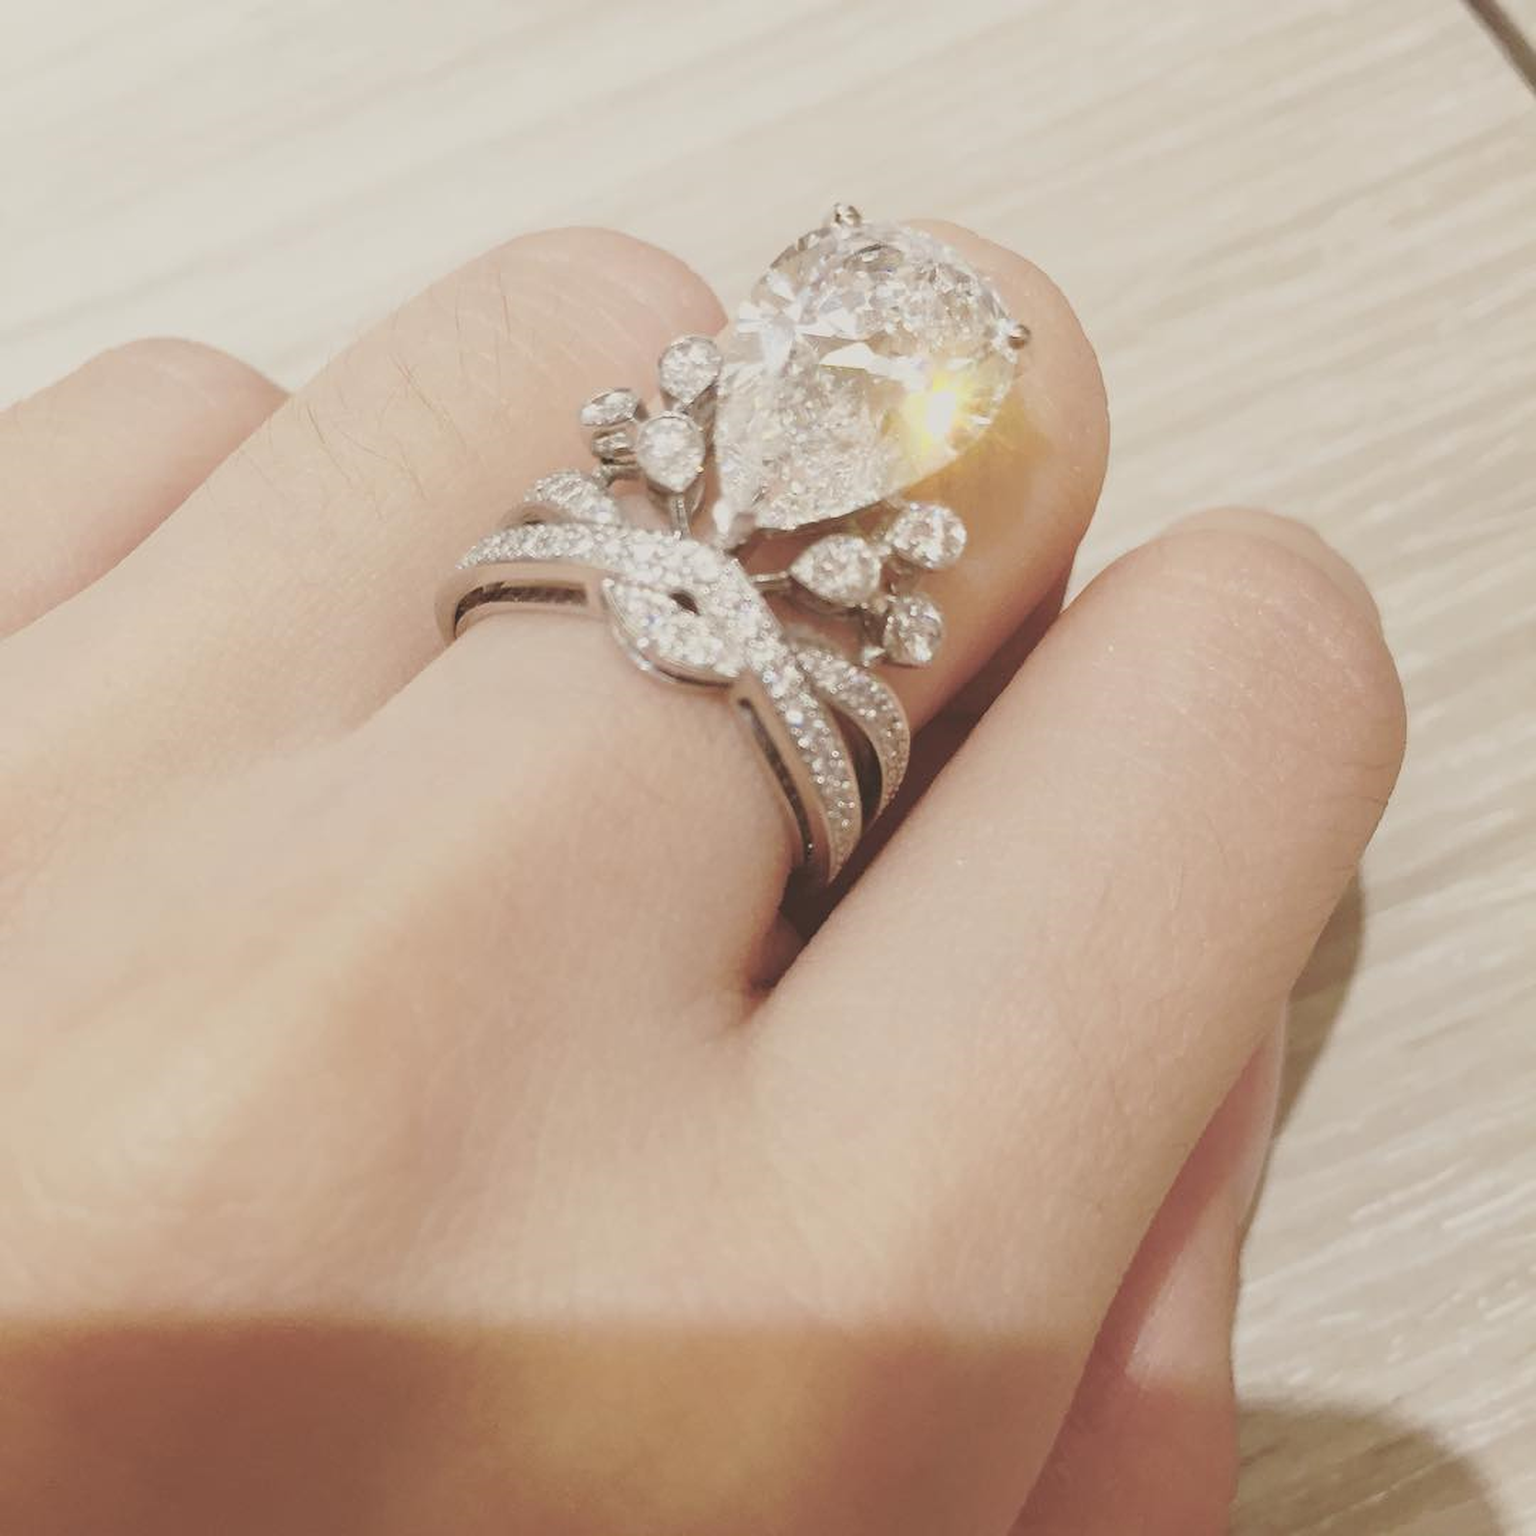 Angelababy Chaumet diamond engagement ring